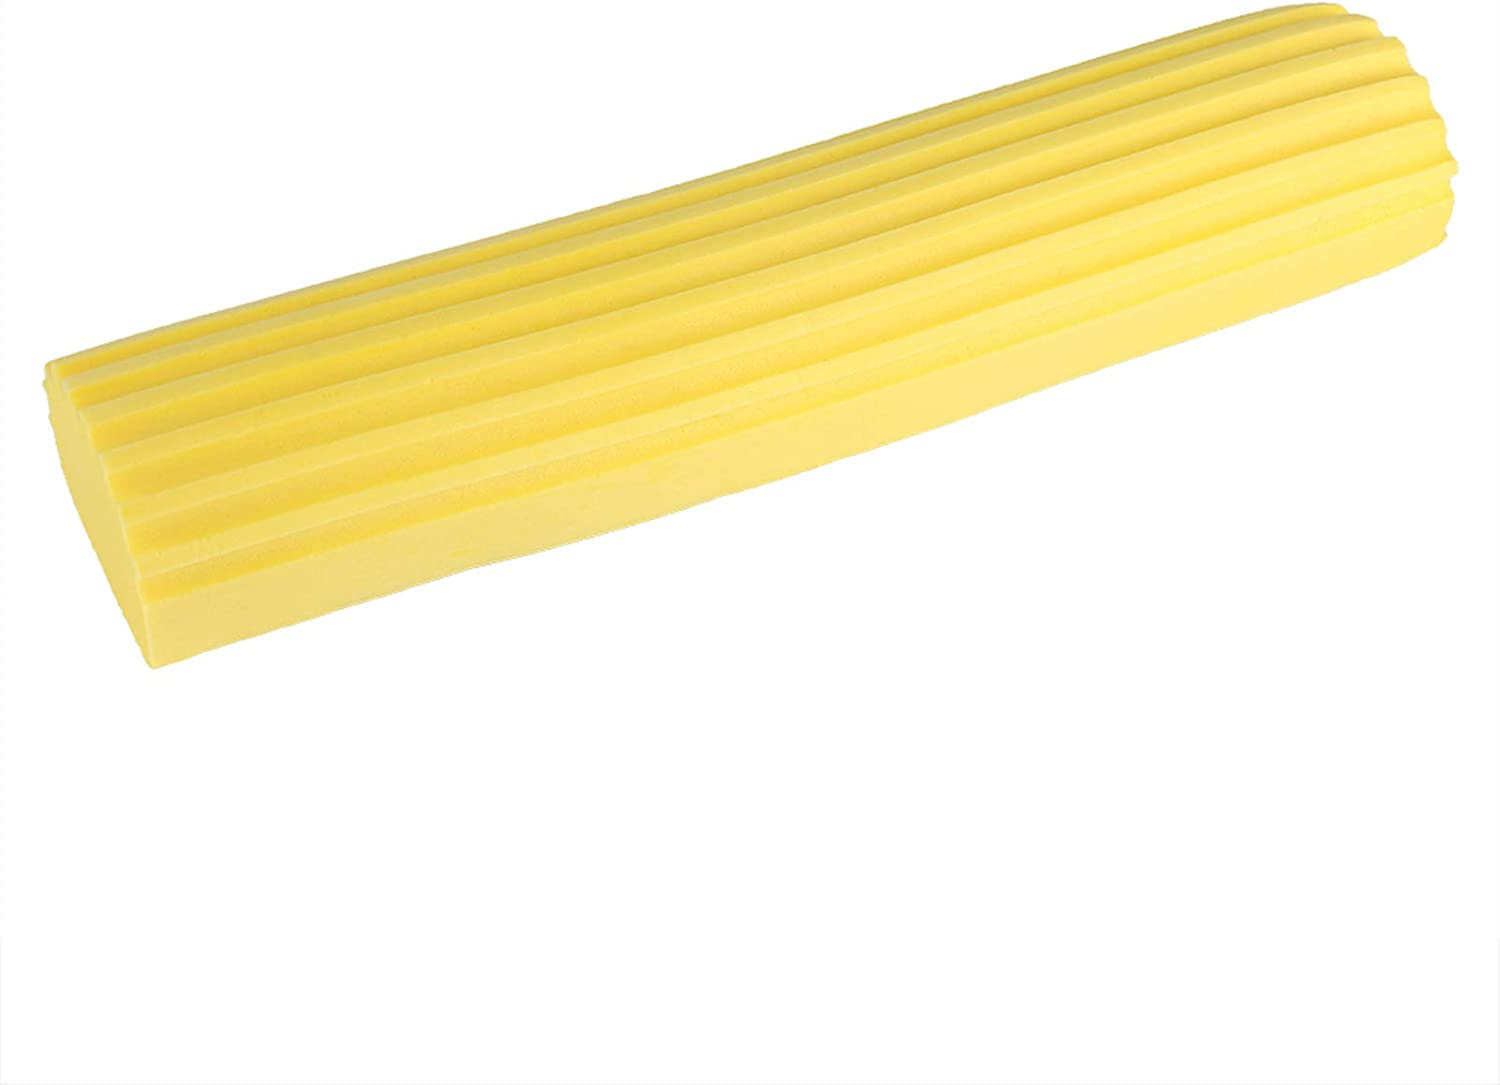 Flat Mop Heads Replacements Highly Fees free!! Durable NEW Fl for Absorbent